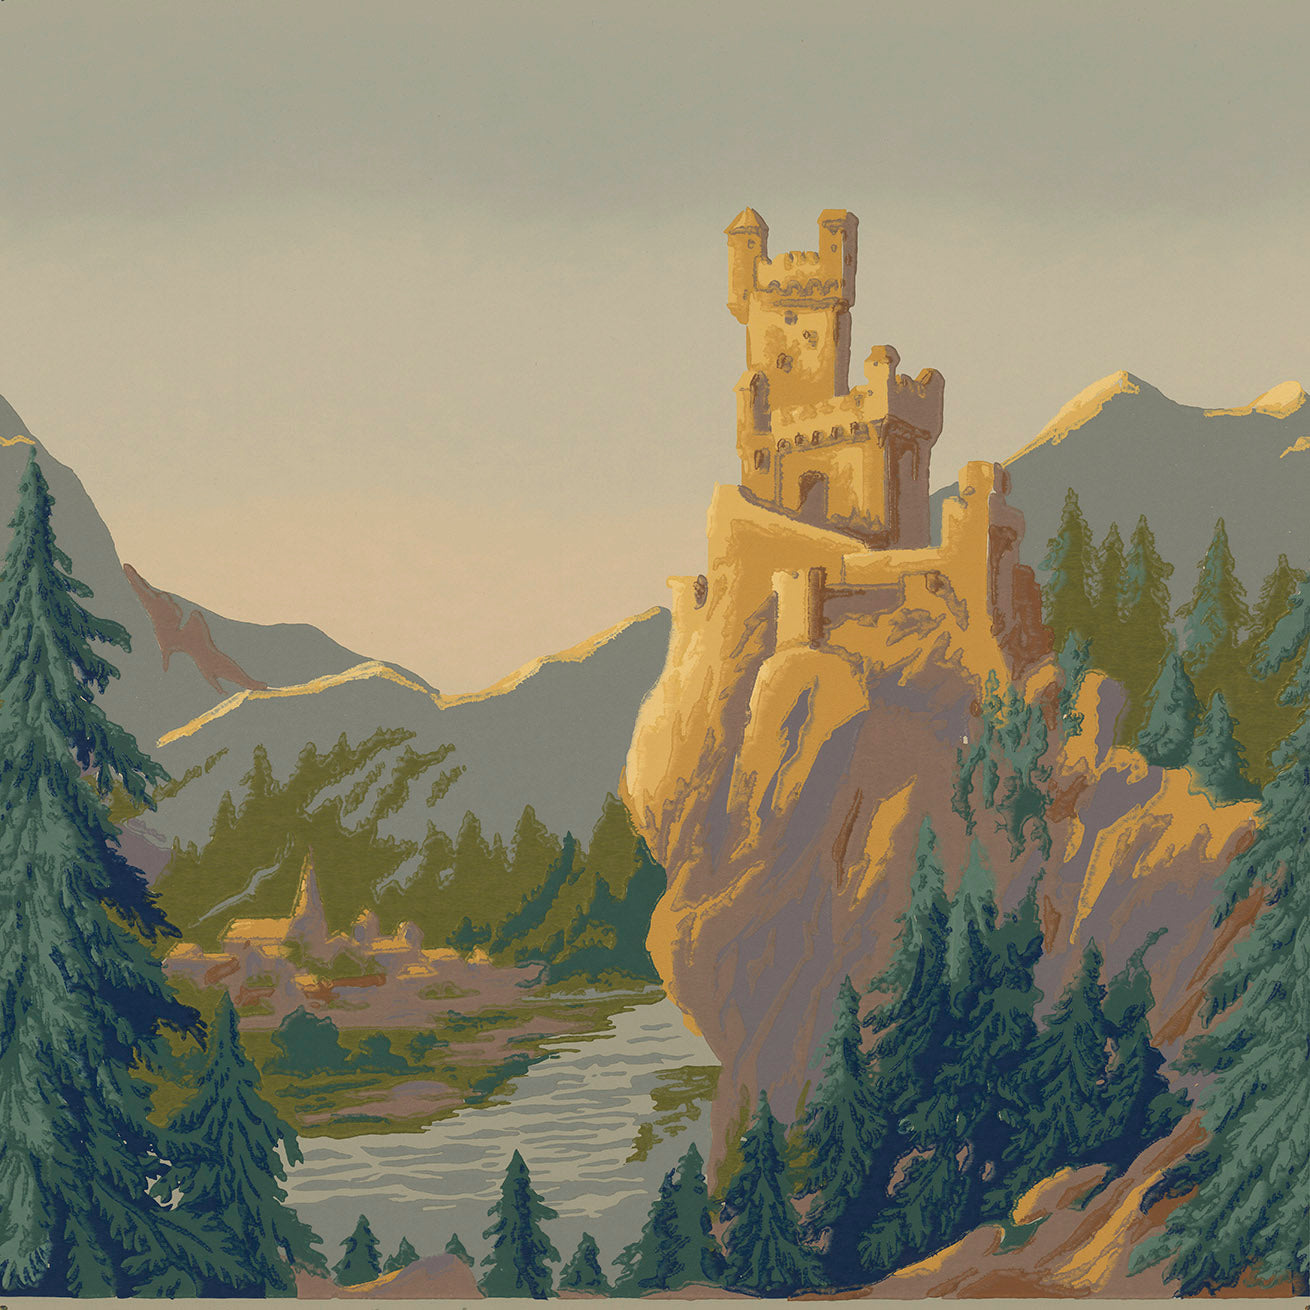 """Castles on the Rhine"" - Small Castle - Antique Wallpaper Remnant"